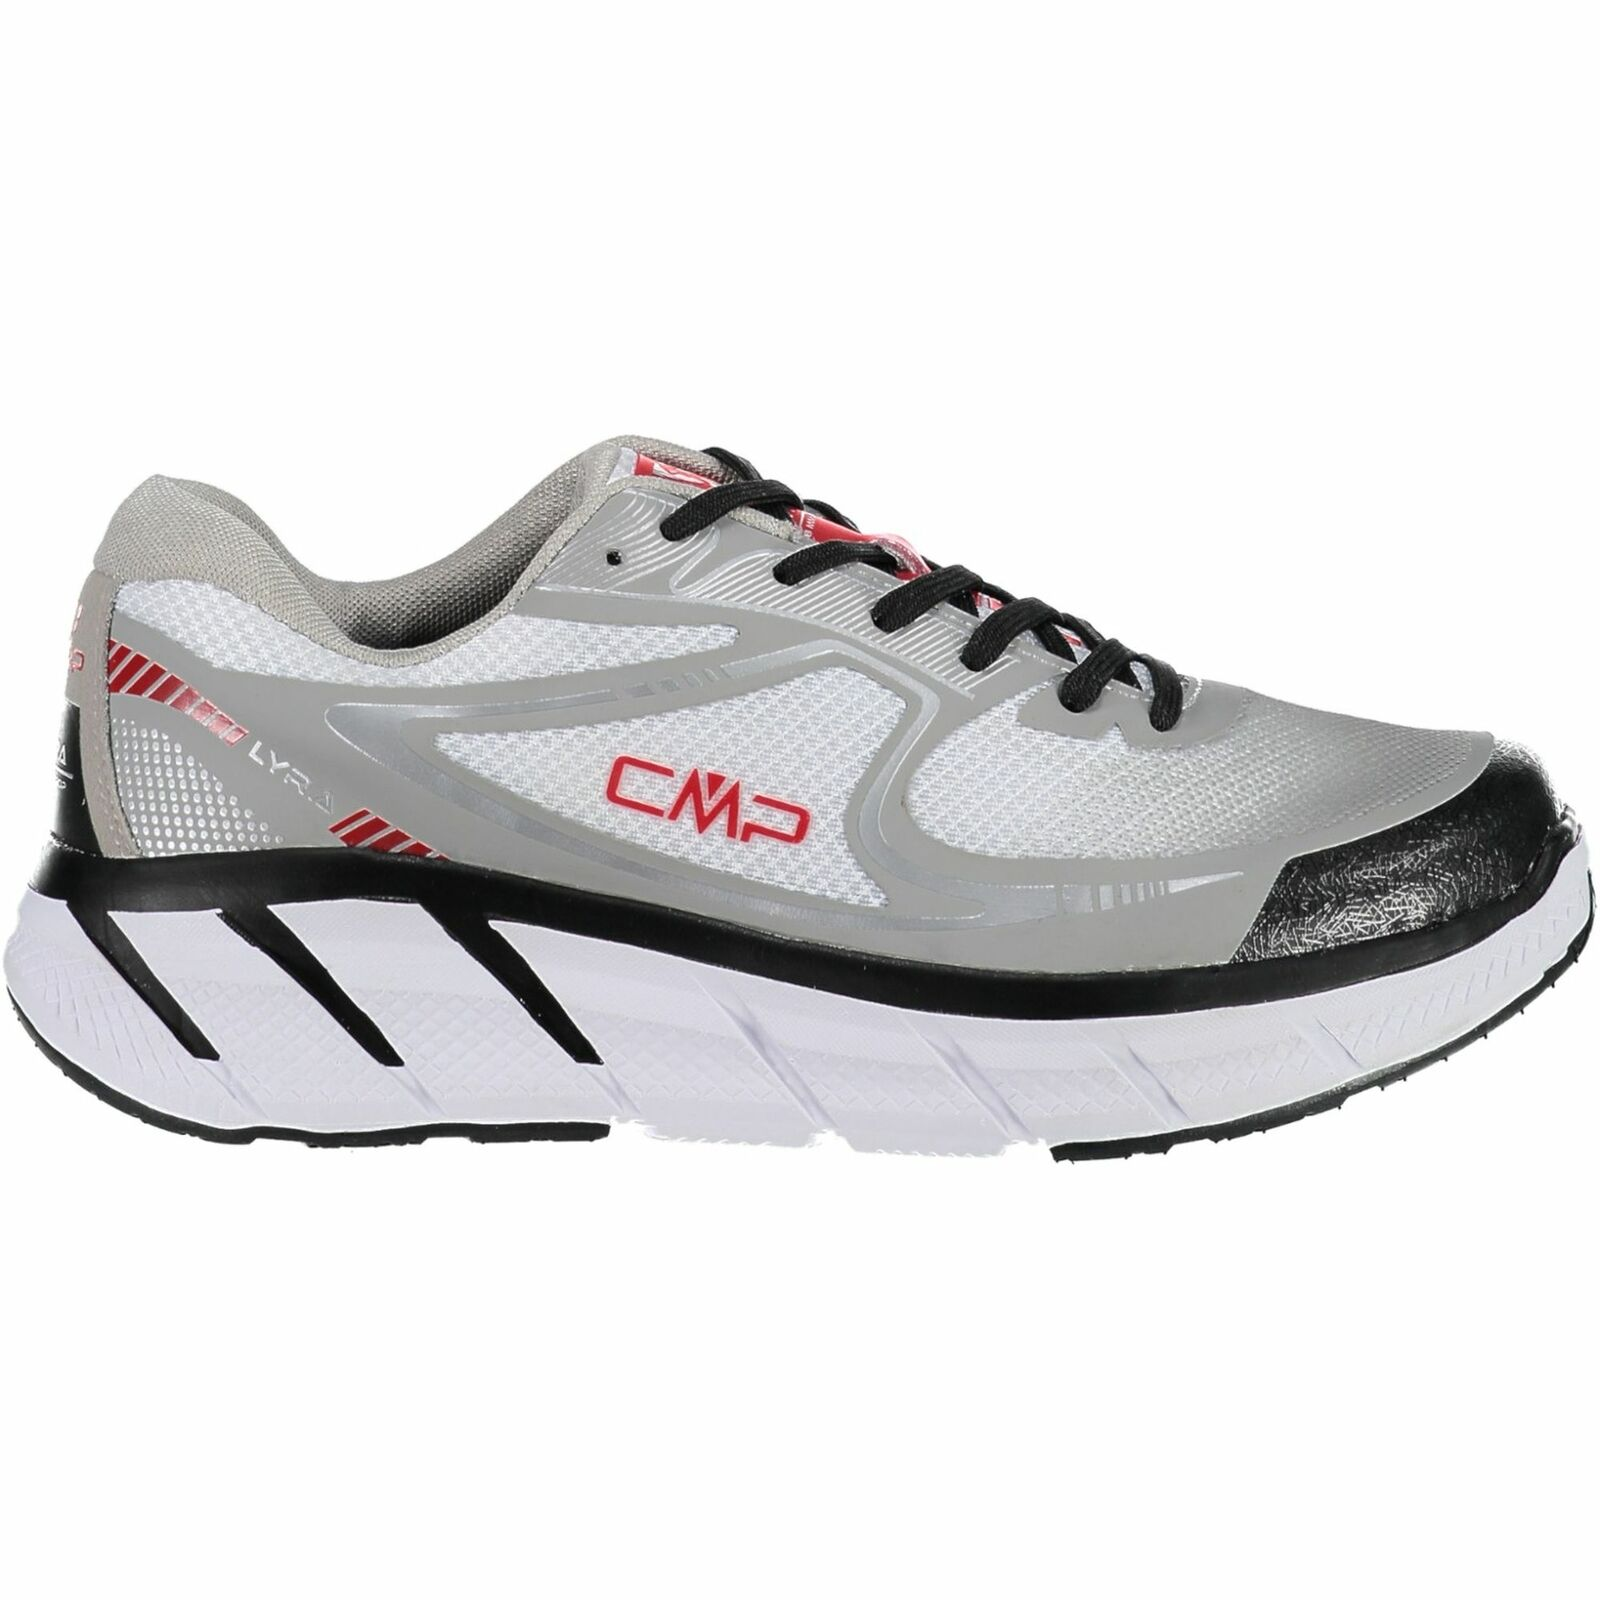 CMP Sports  shoes Race Lyra maxi Running shoes Solid G  Mesh  order now